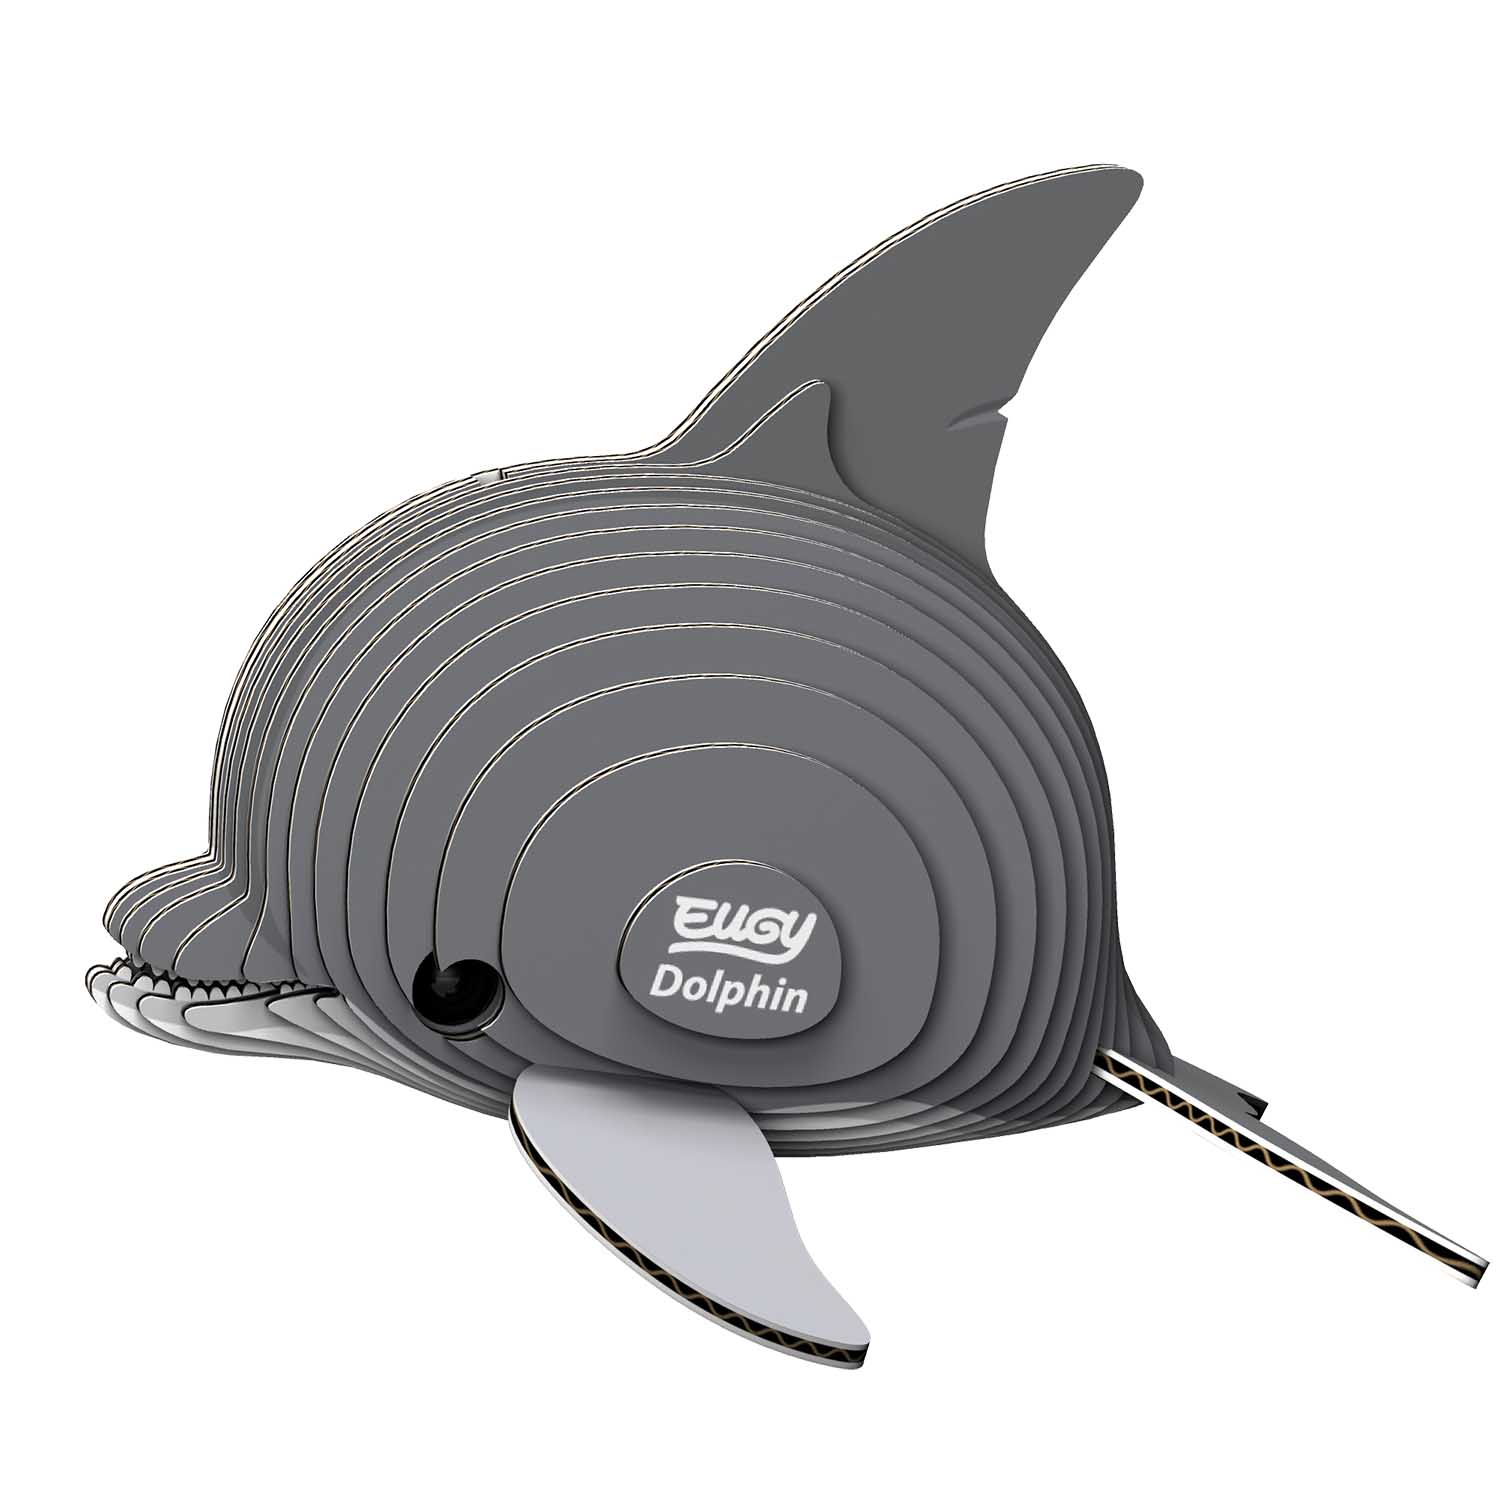 Dolphin Eugy Dolphins 3D Puzzle